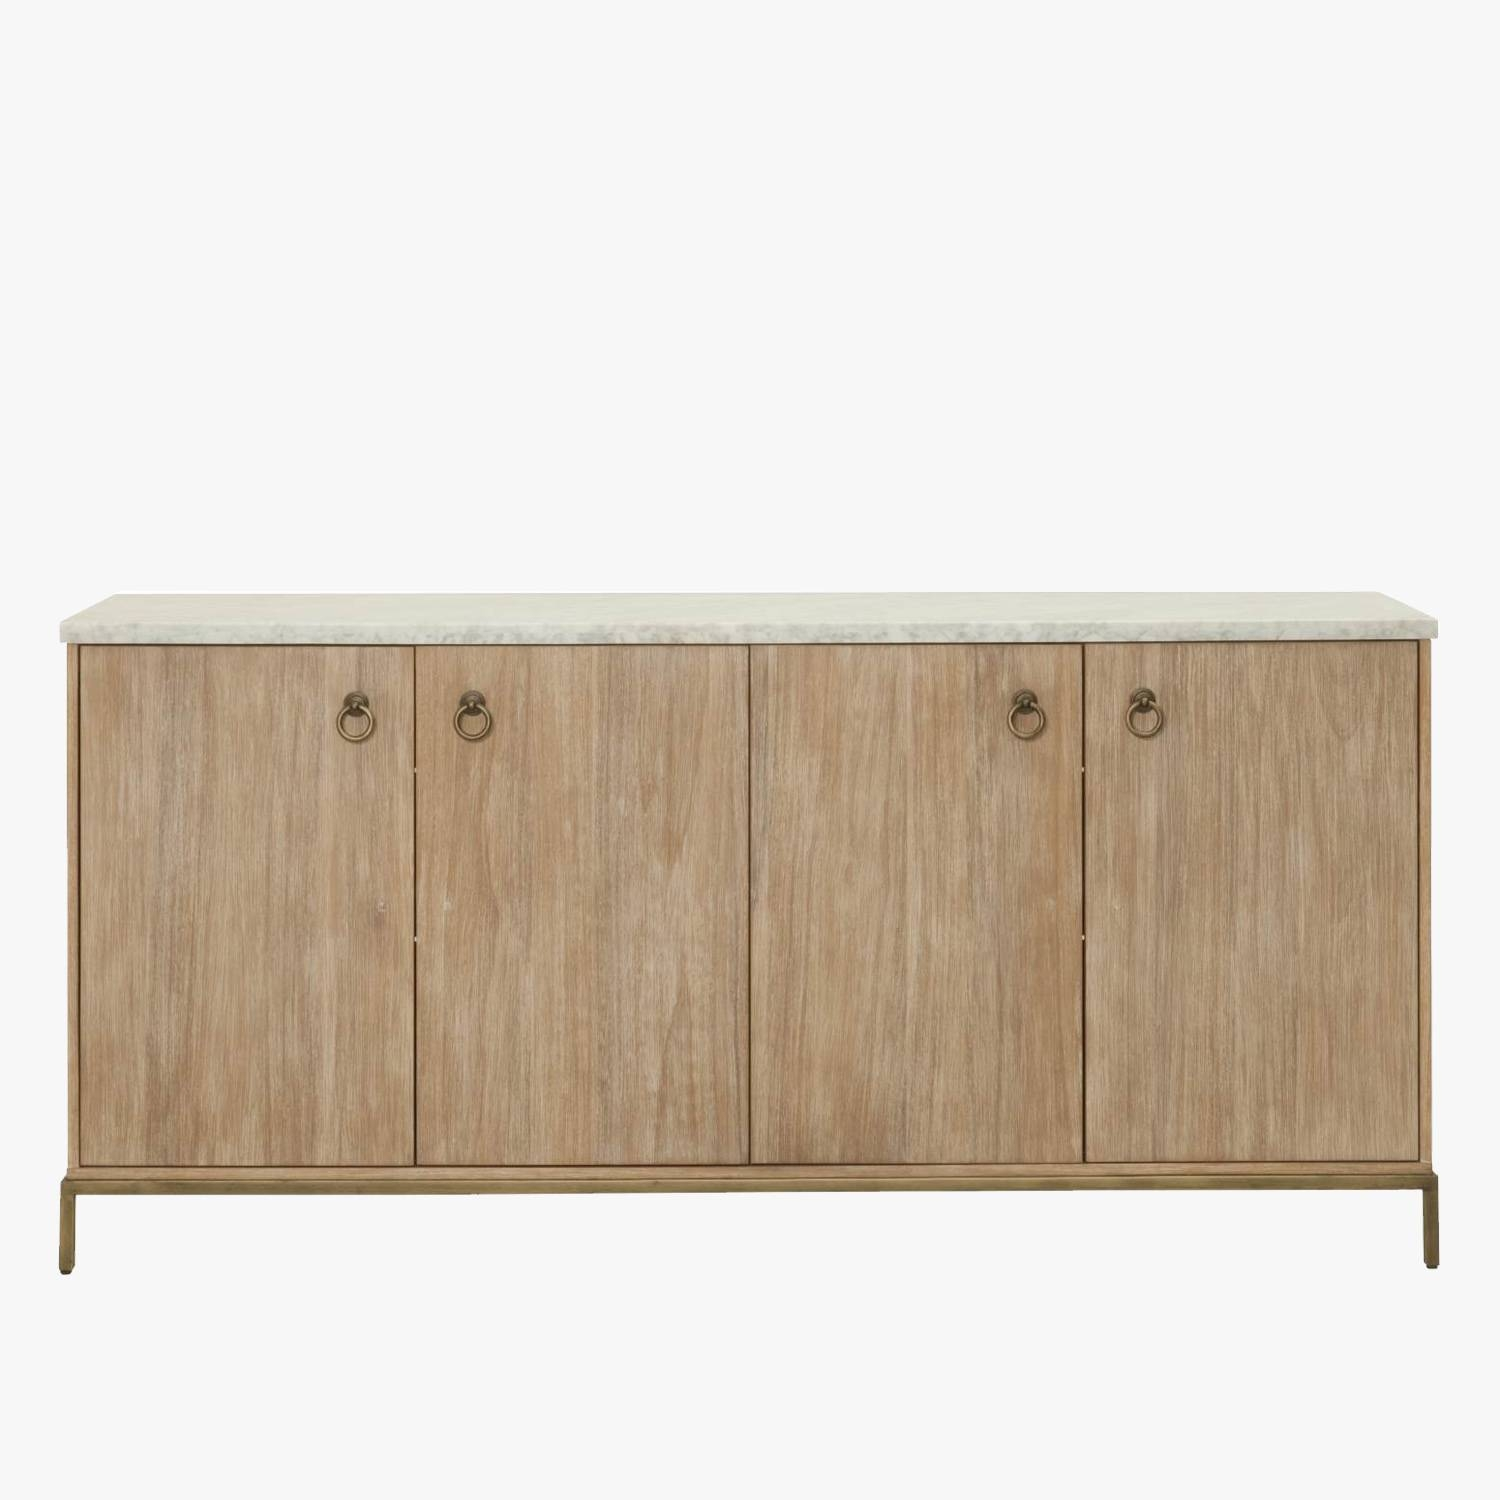 Storage - Cabinets, Shelving And Sideboards - Dear Keaton with Marble Top Sideboards (Image 13 of 15)